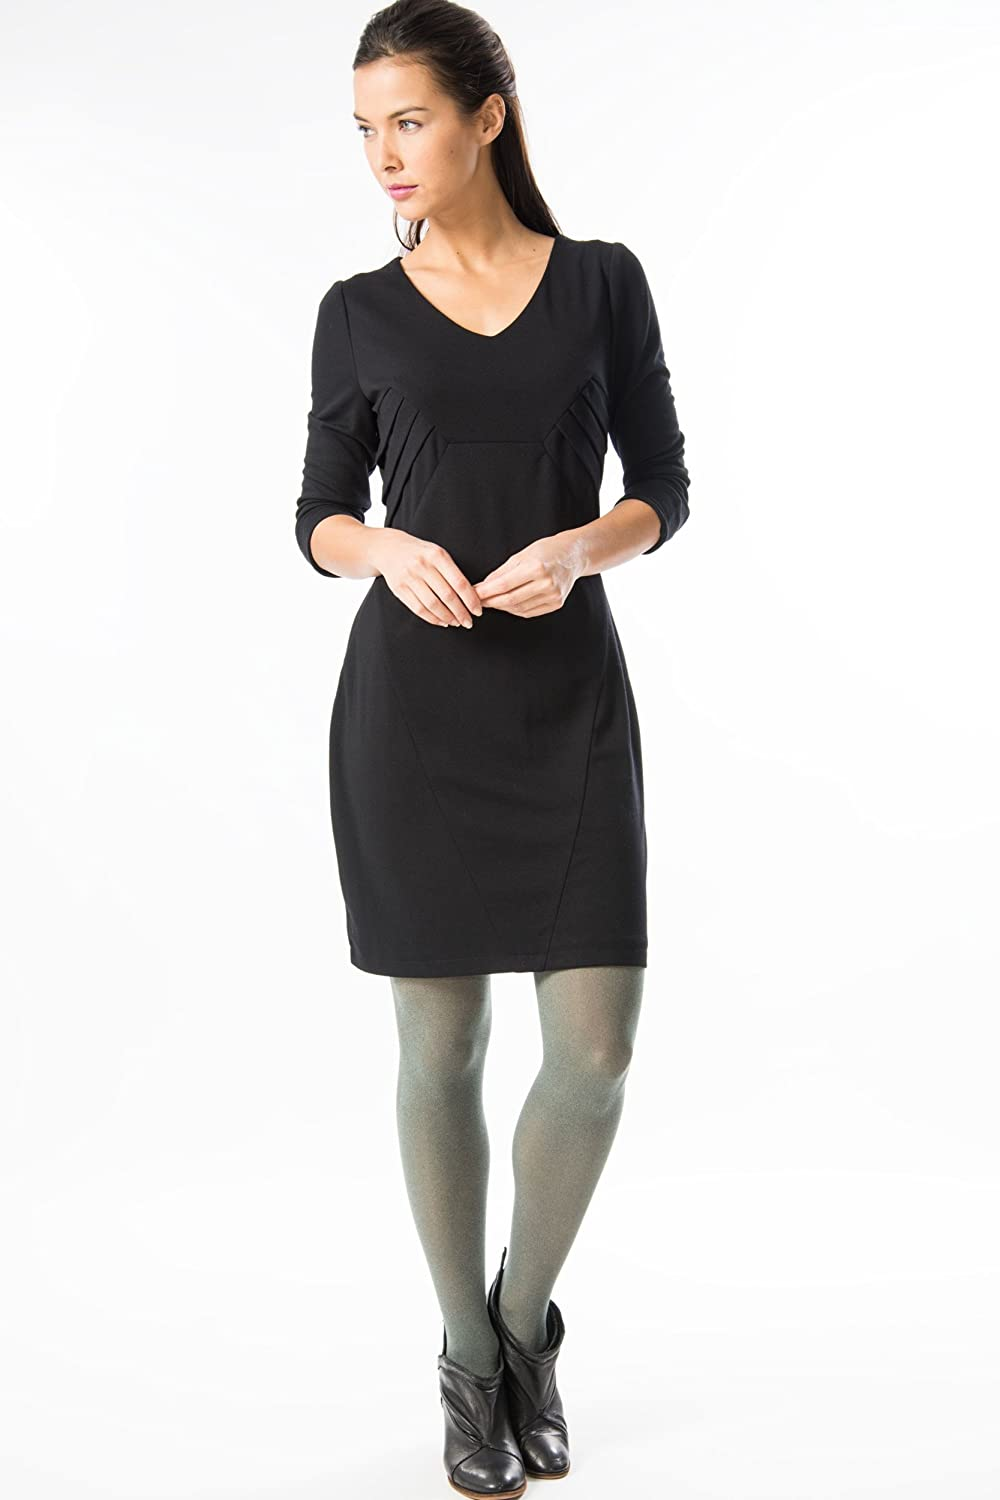 Skunkfunk Women's Dress